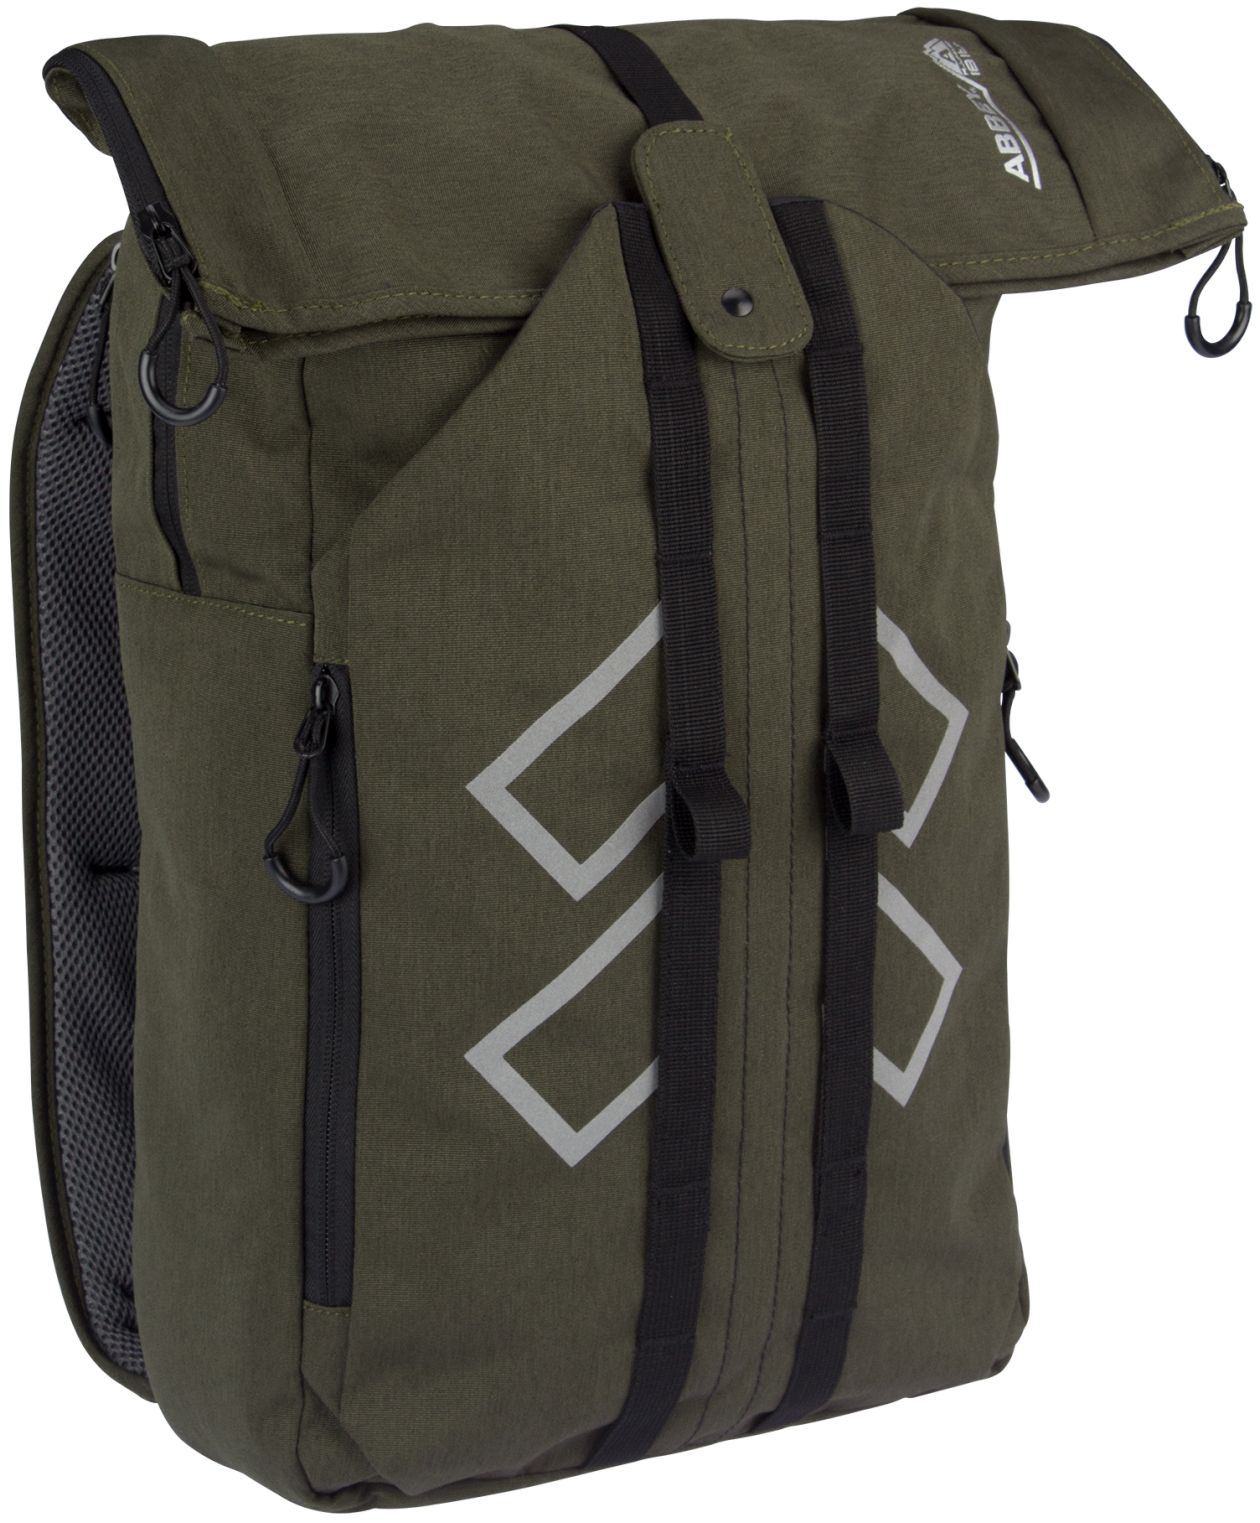 Active Outdoor Messenger Pack • X-Junction 18L •